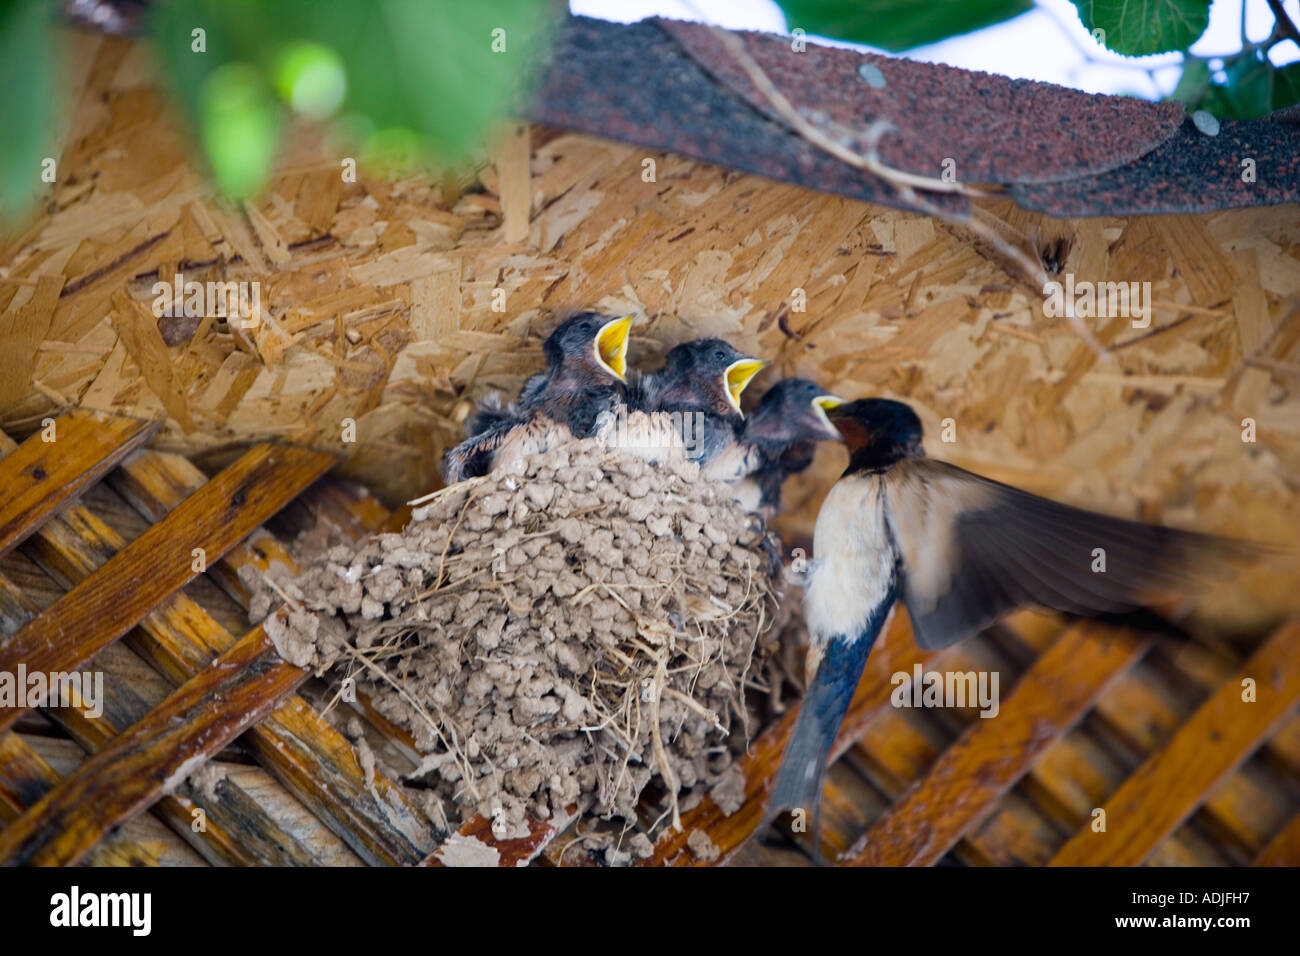 Hungry fledgling swallows being fed in relays 'Didim', 'Turkey' - Stock Image